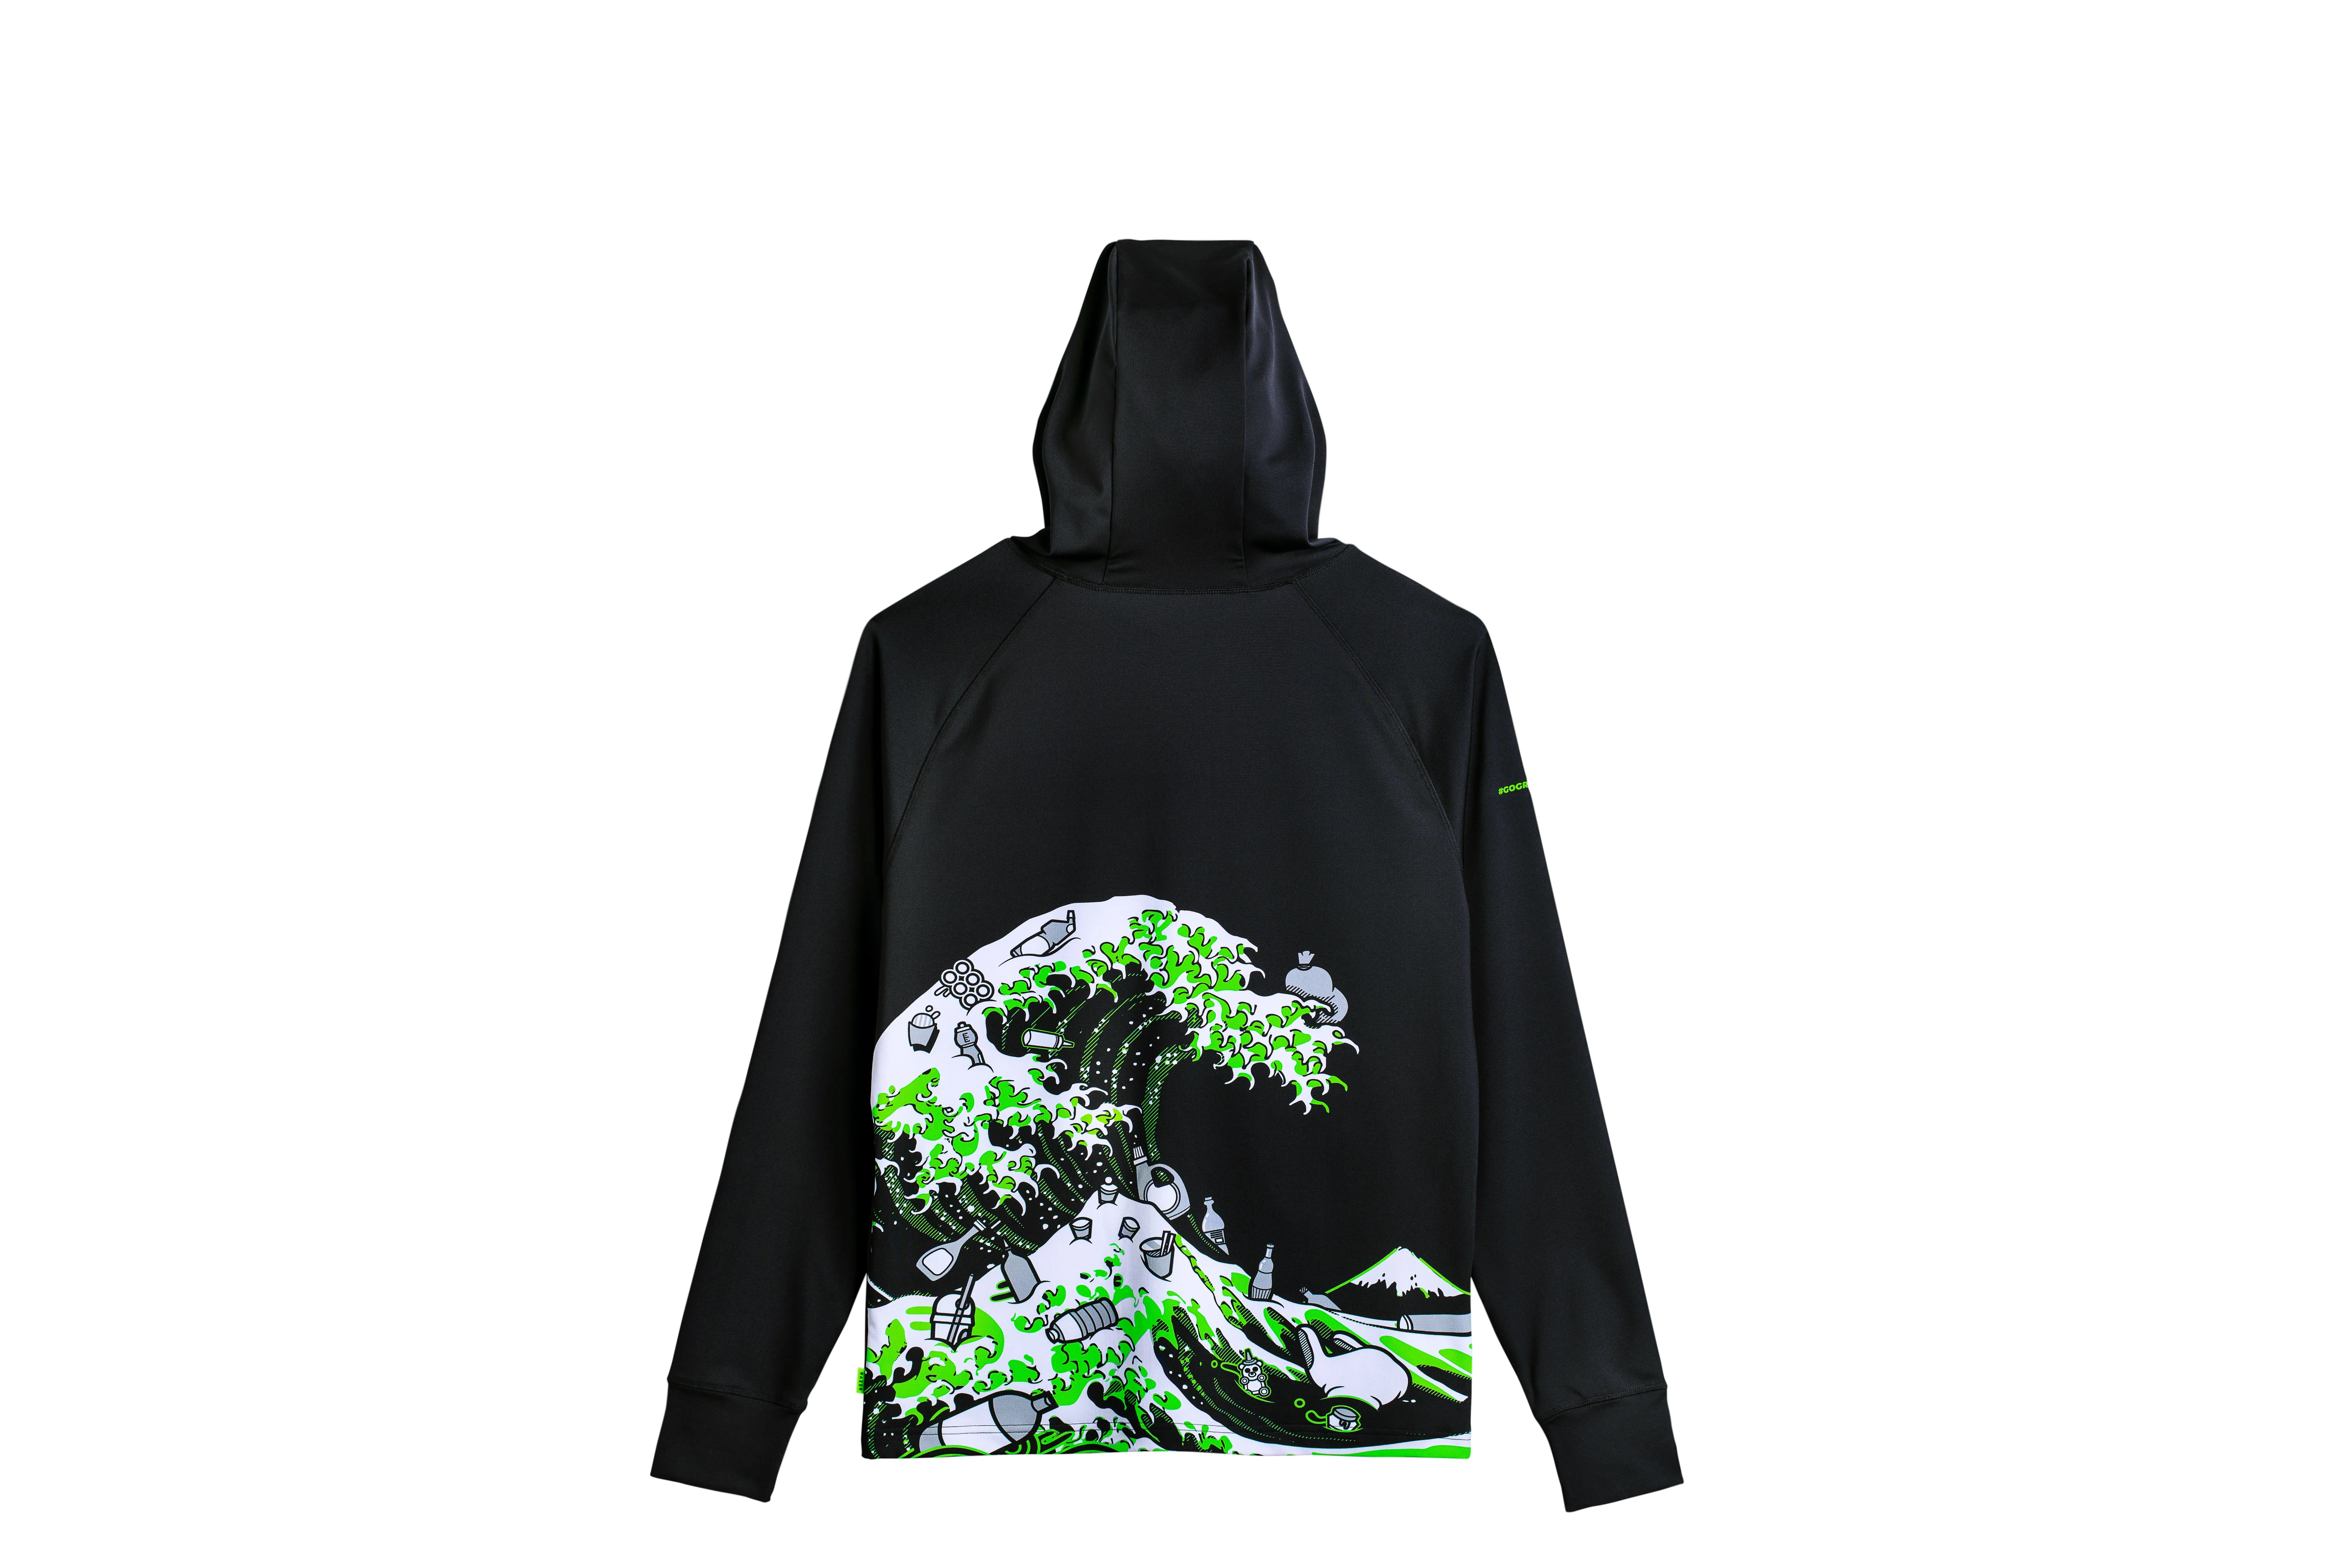 Gaming hardware company Razer is offering a new, limited-edition clothing line inspired by the famous Great Wave woodcarving off the coast of Kanagawa.  This hoodie ($ 149.99) and other products are made from materials created from reclaimed marine plastics and will fund efforts to reduce plastics in the oceans.